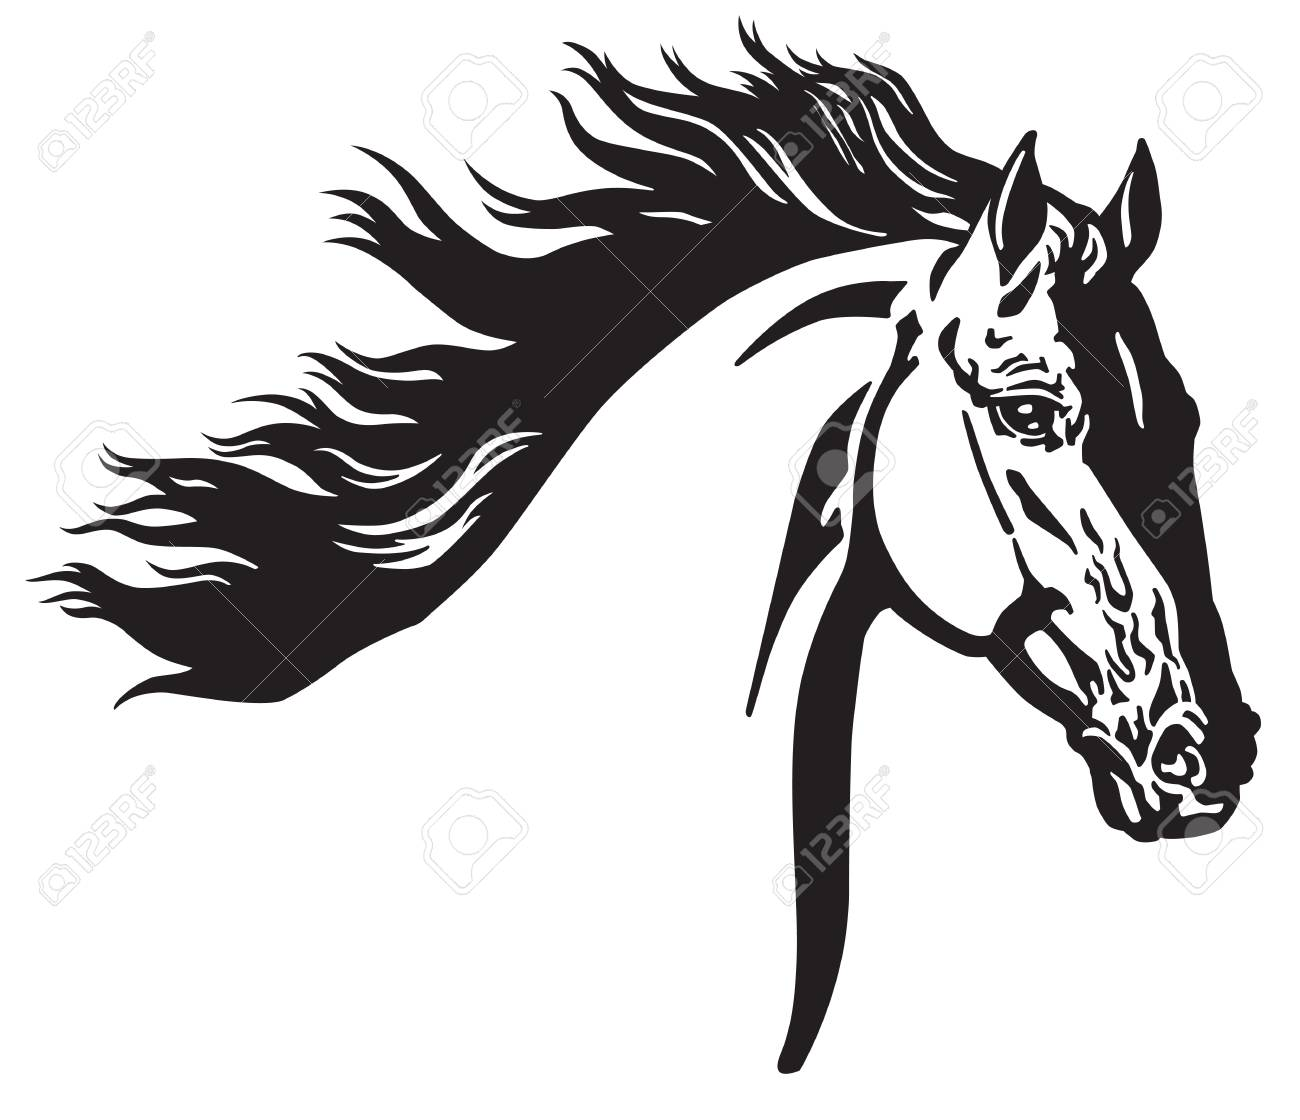 Head Of Wild Horse Black And White Vector Illustration Royalty Free Cliparts Vectors And Stock Illustration Image 109586438